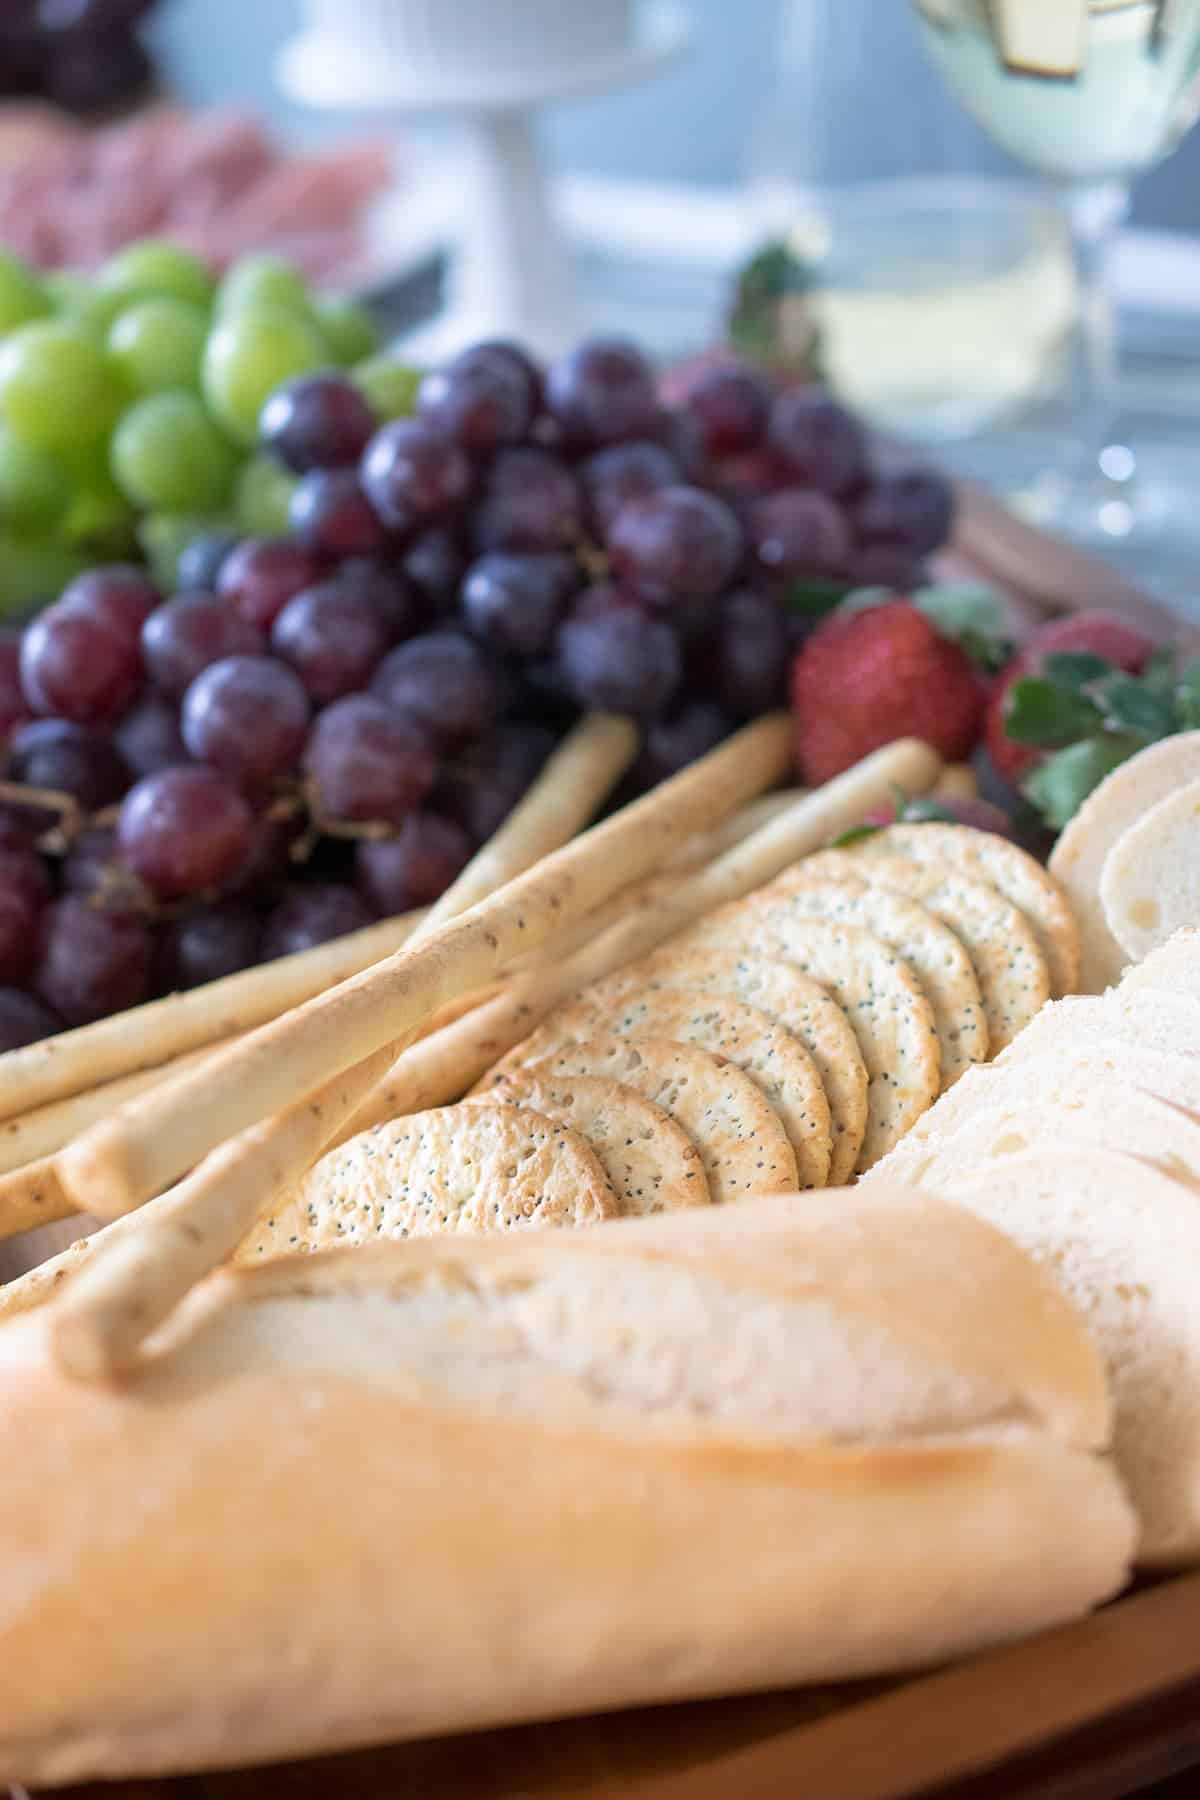 Party tray with freshly sliced baguette, crackers, strawberries, and grapes